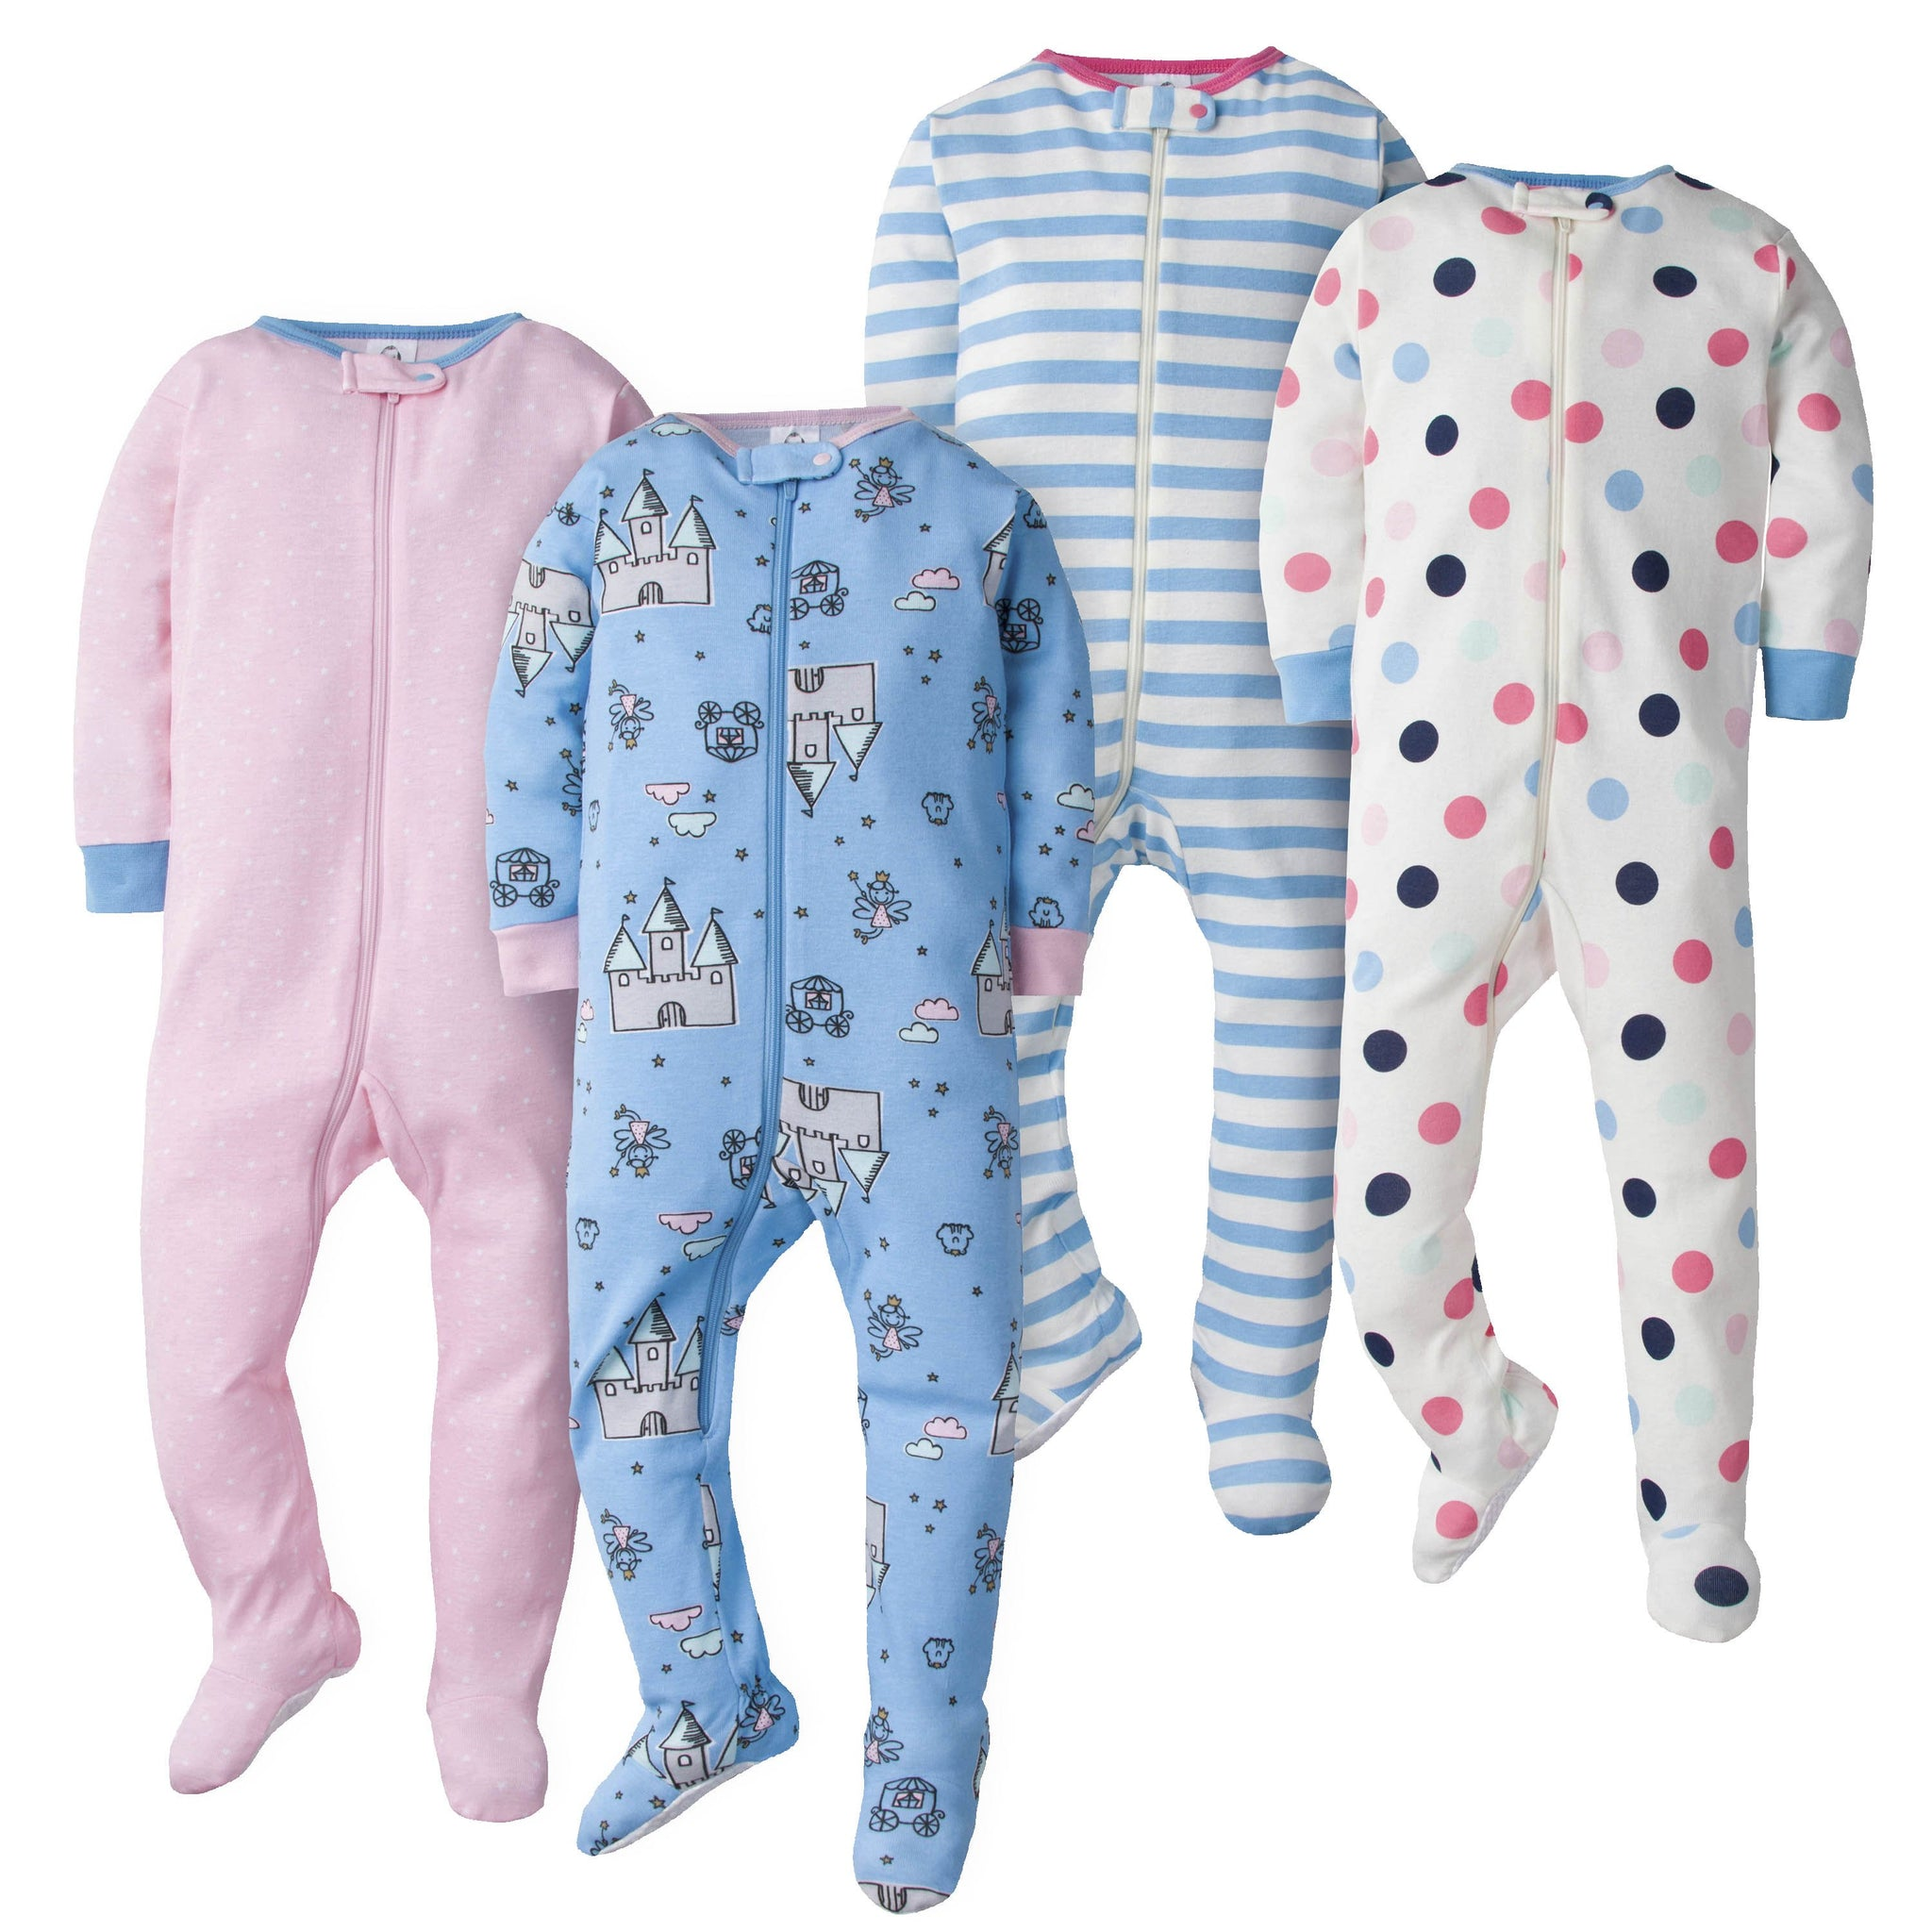 Gerber Girls' Dots and Fairytale 4-Pack Footed Union Suits